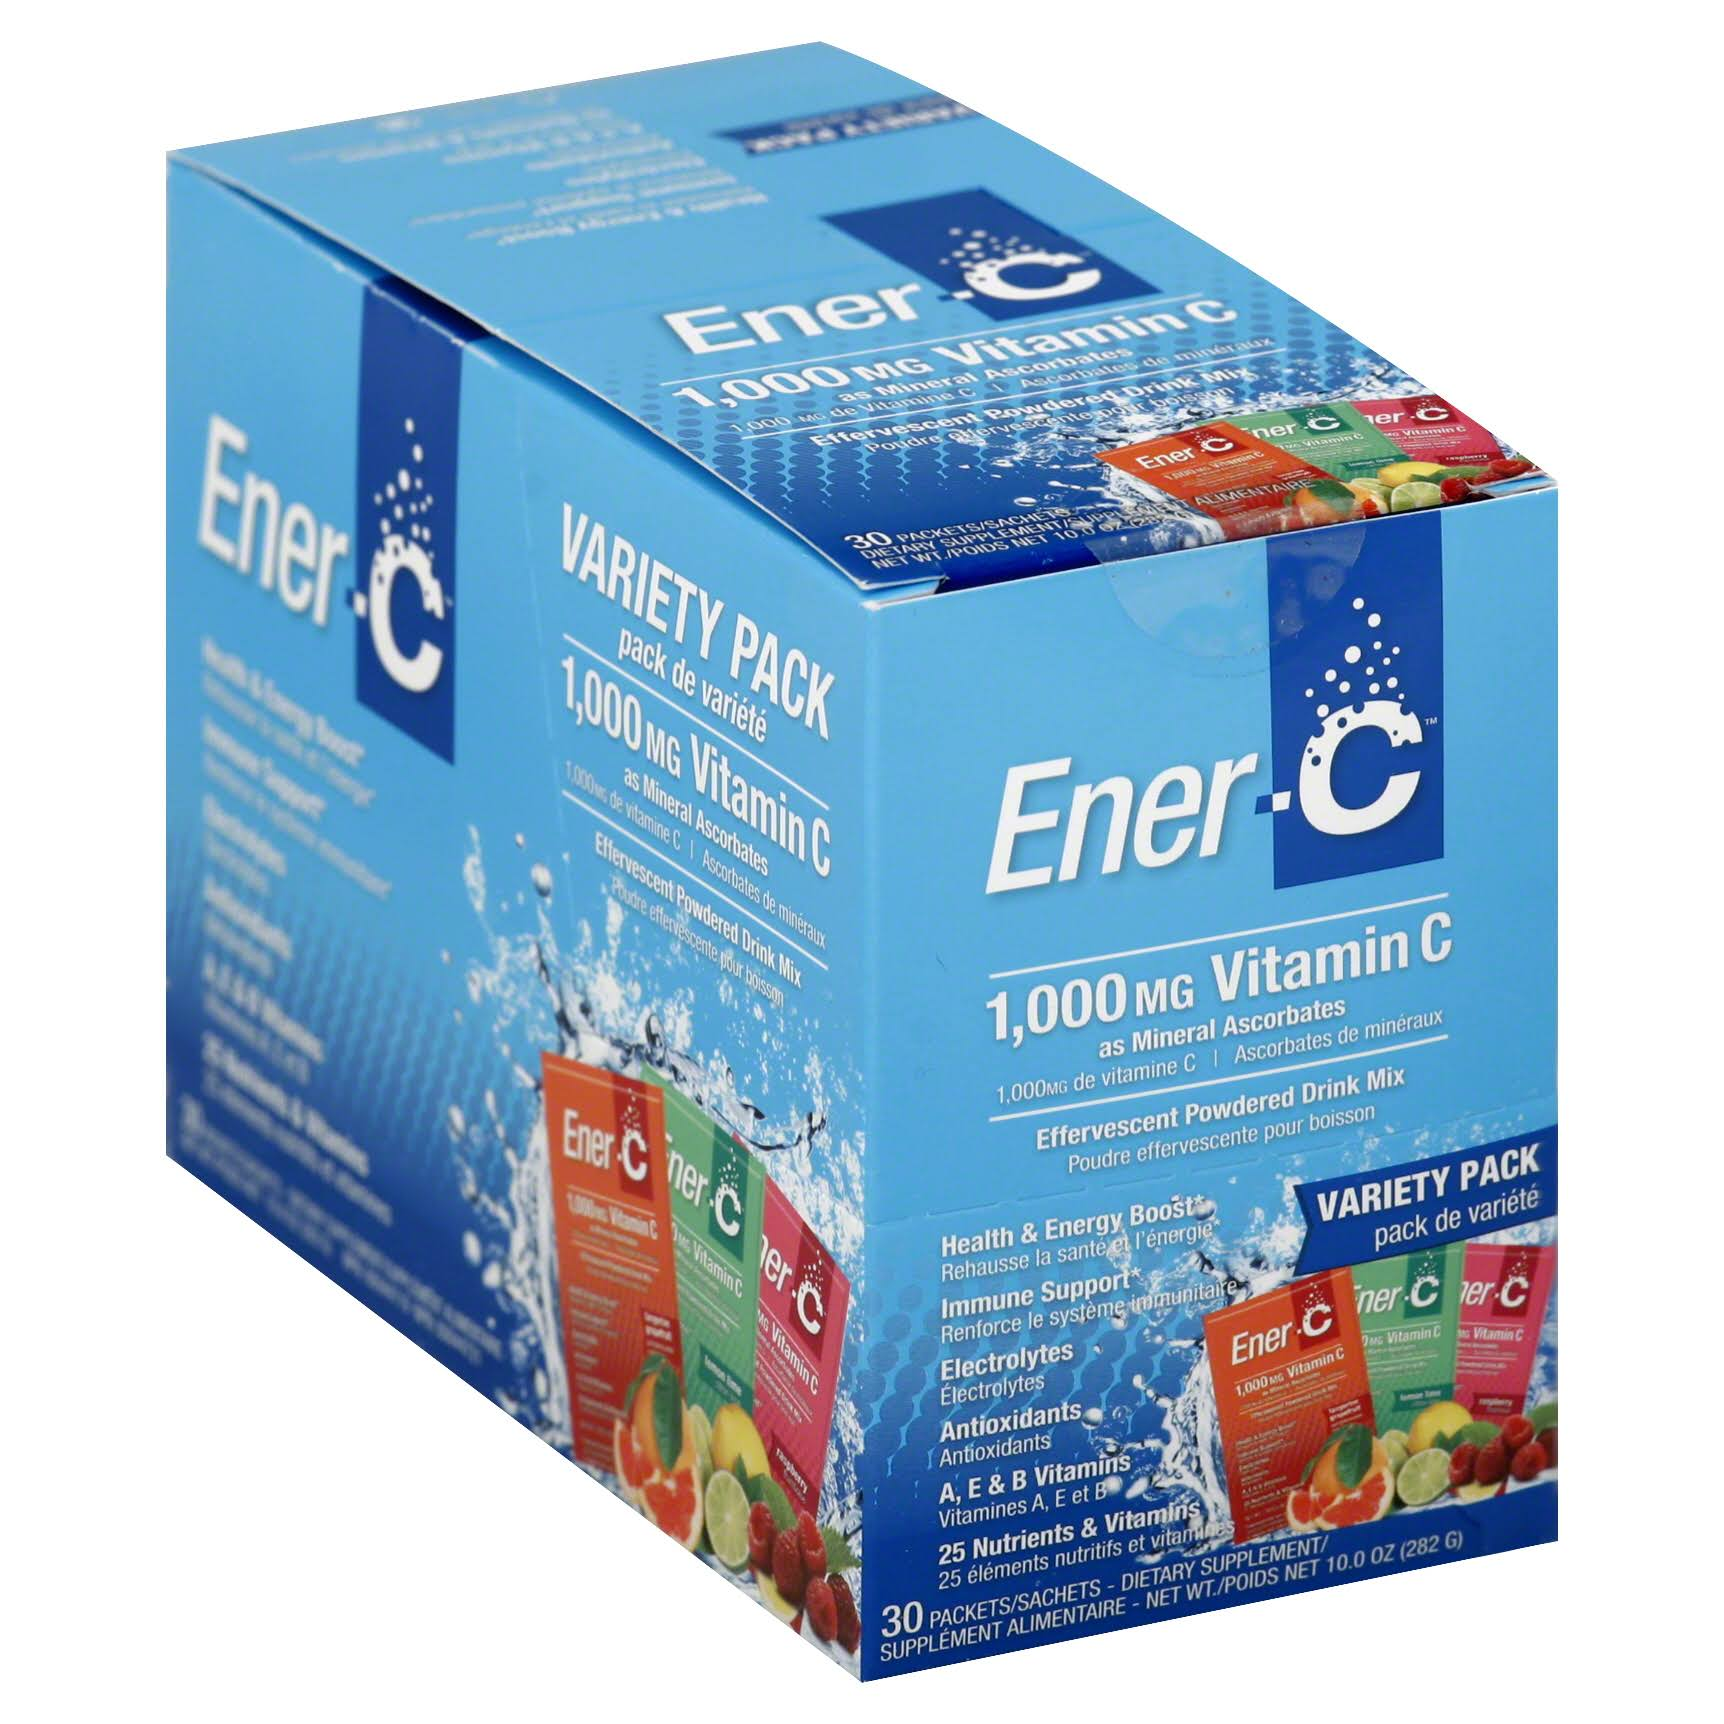 EnerC Vitamin C Supplement Variety Pack - Lemon, Orange & Raspberry